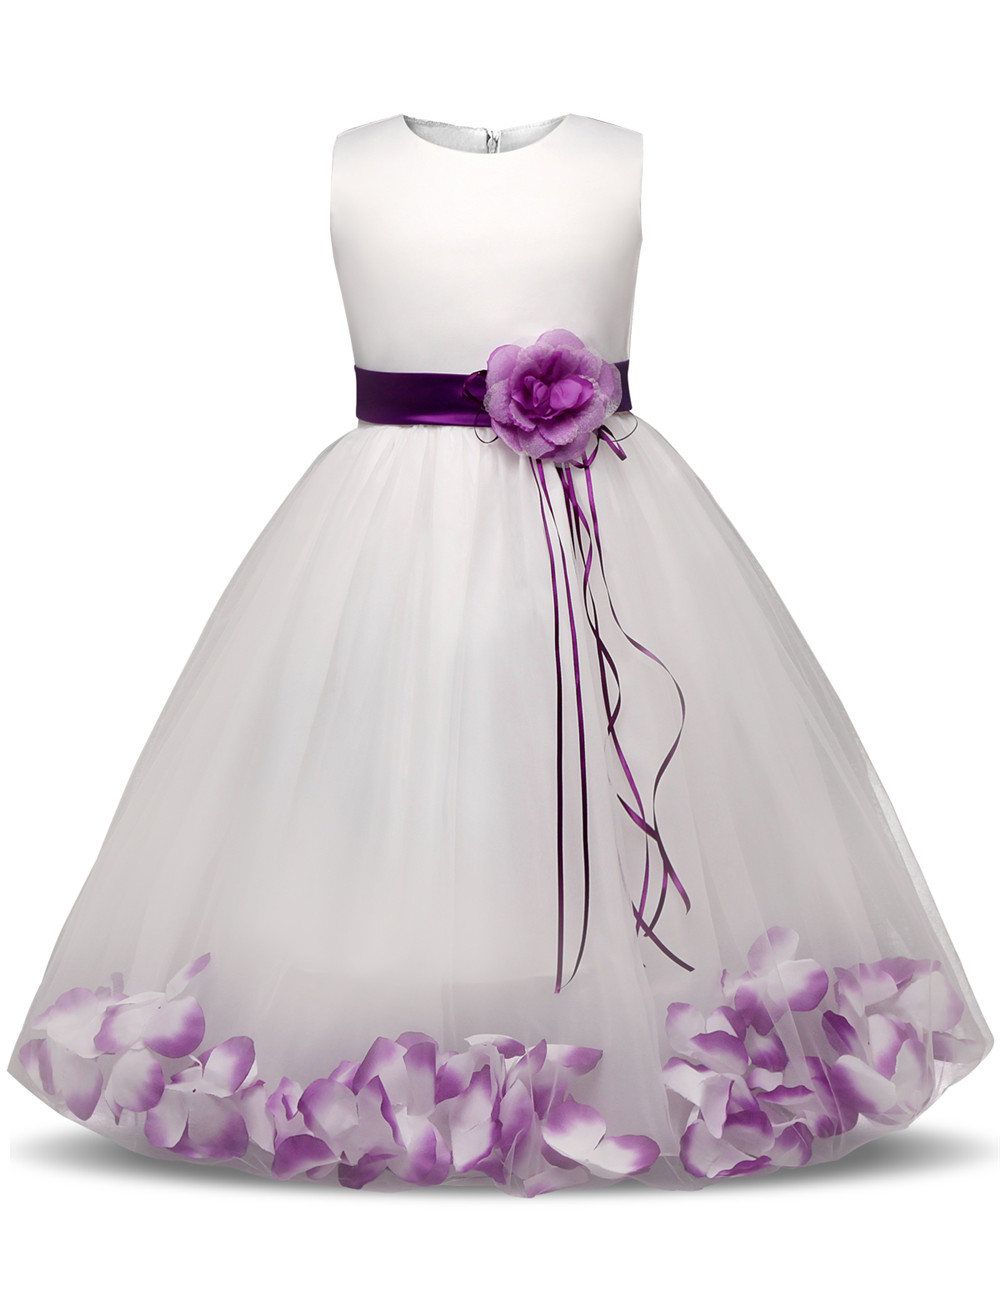 Fancy flower childrens princess dresses girl kid ceremony party fancy flower childrens princess dresses girl kid ceremony party clothes junior child wedding dress for teen girl prom ball gown in dresses from mother ombrellifo Image collections